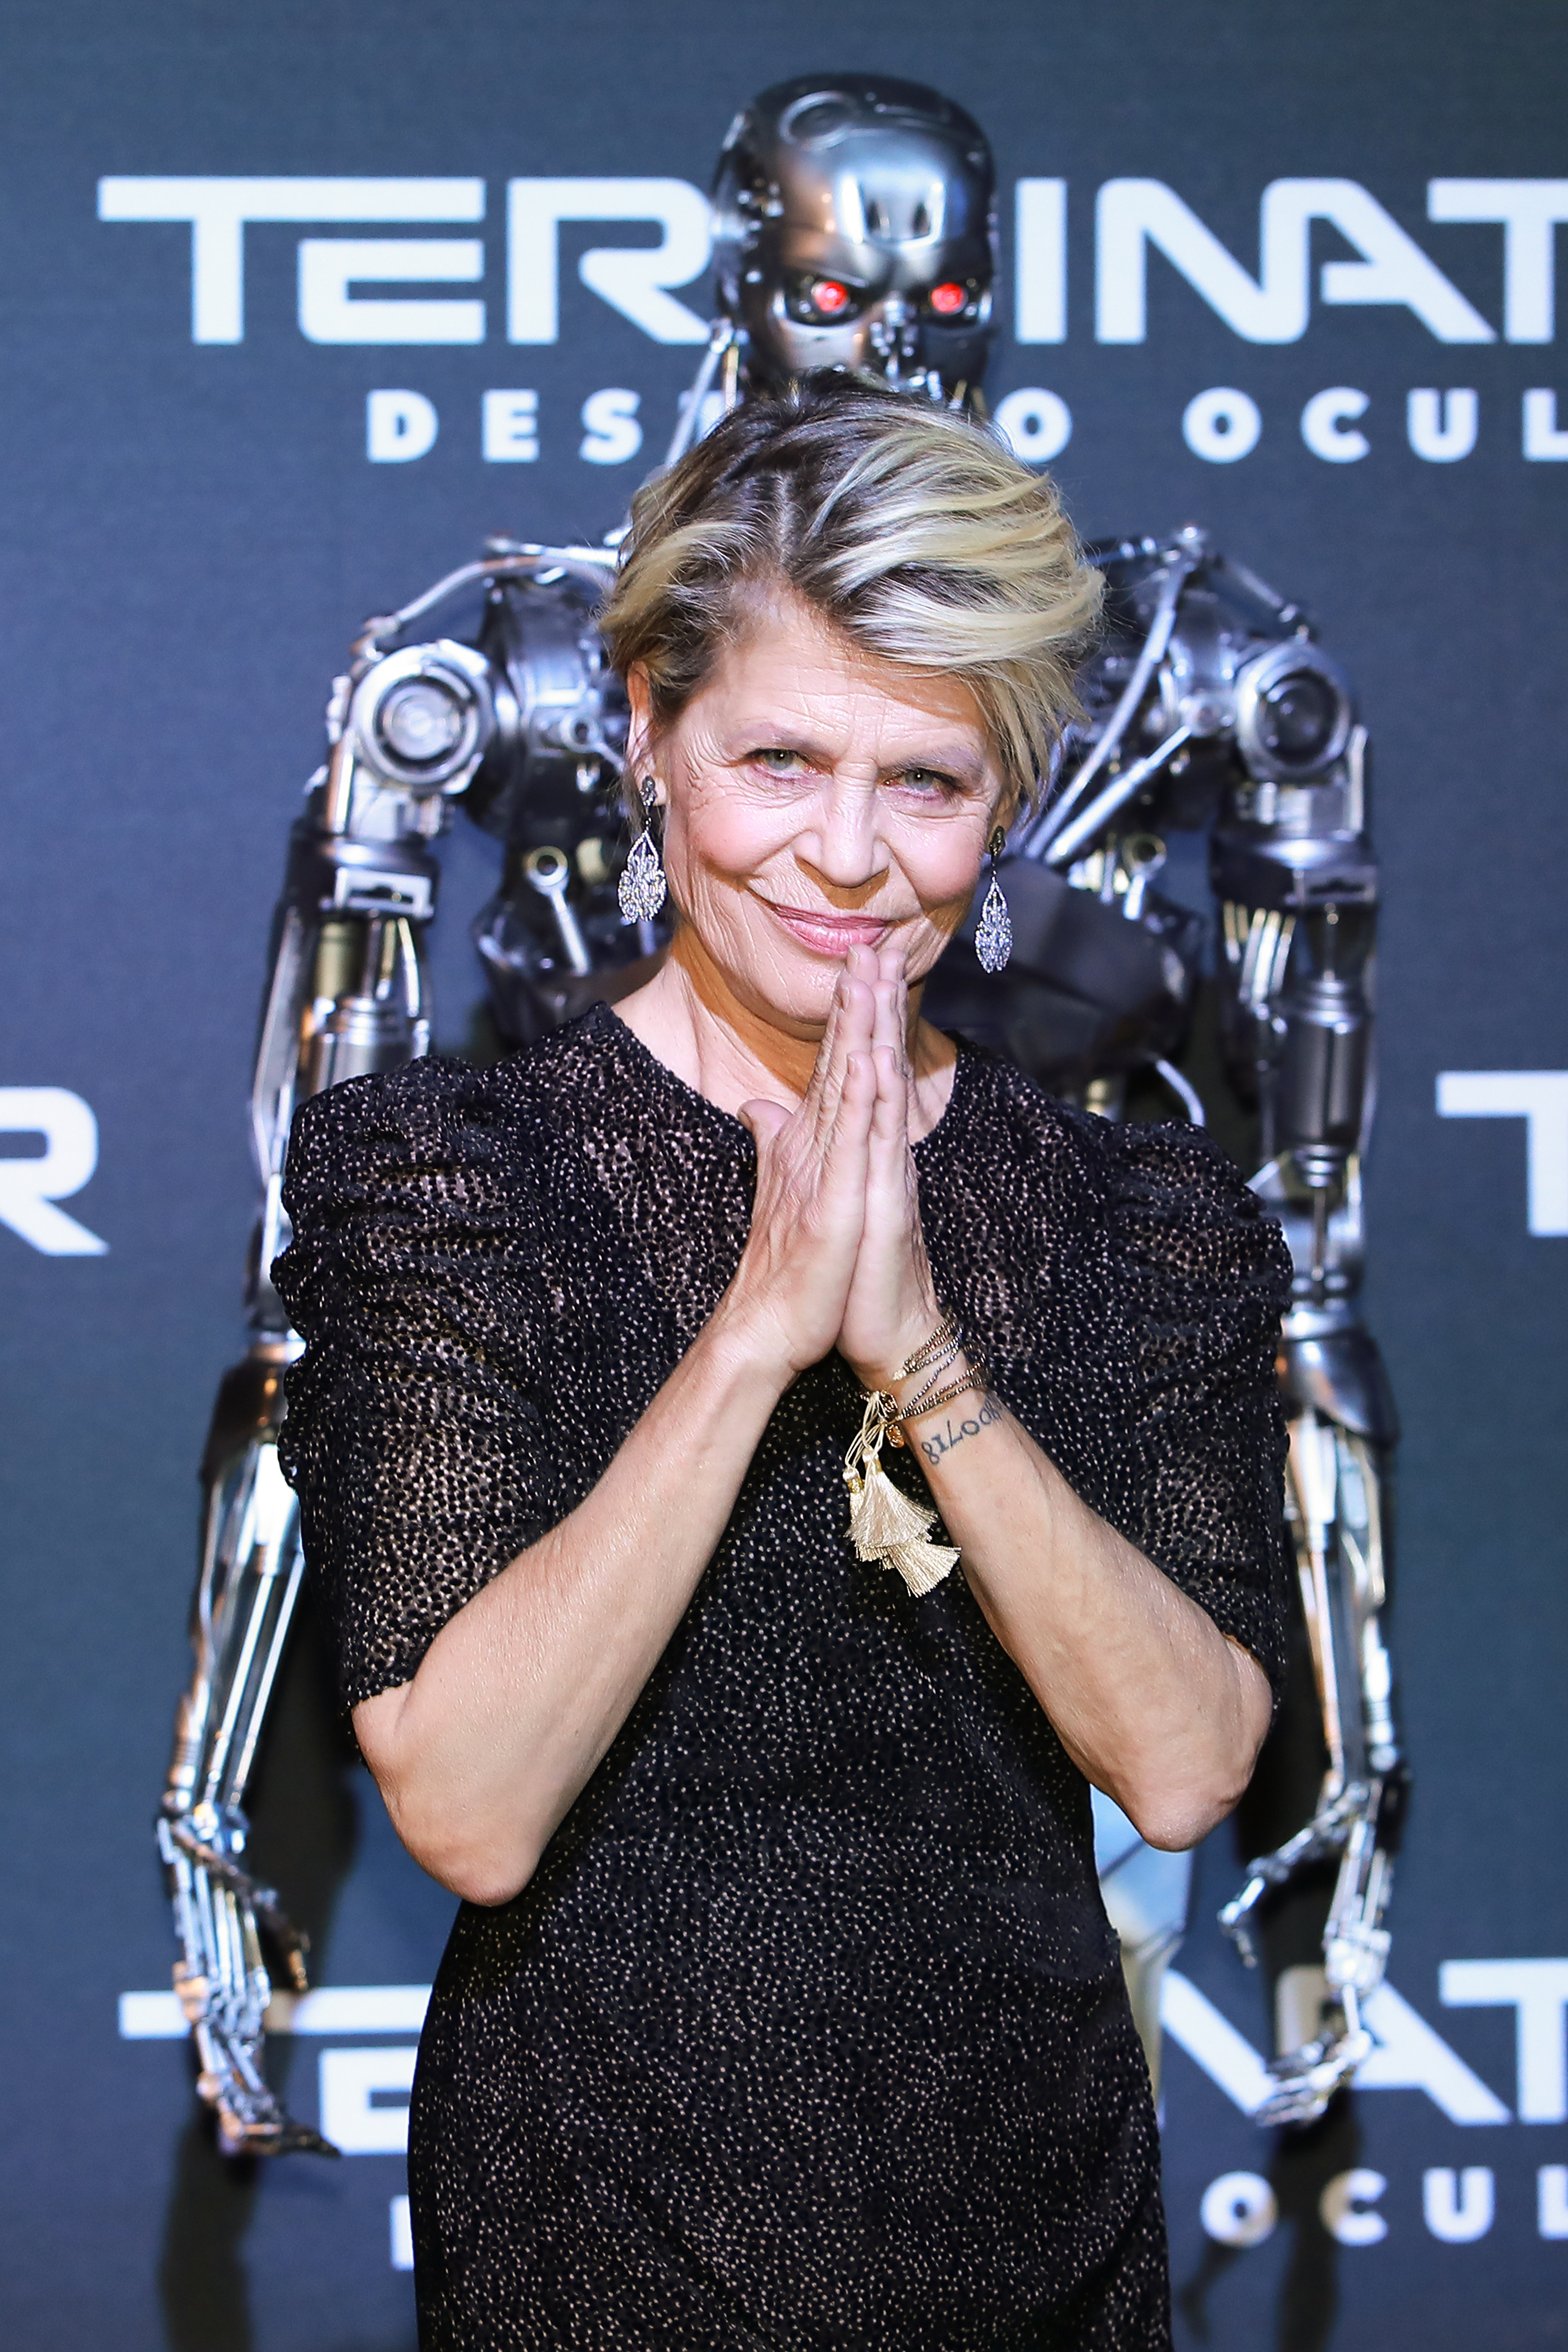 EXCLUSIVE: 63 year old Linda Hamilton REVEALS jaw dropping regime she underwent for Terminator: Dark Fate